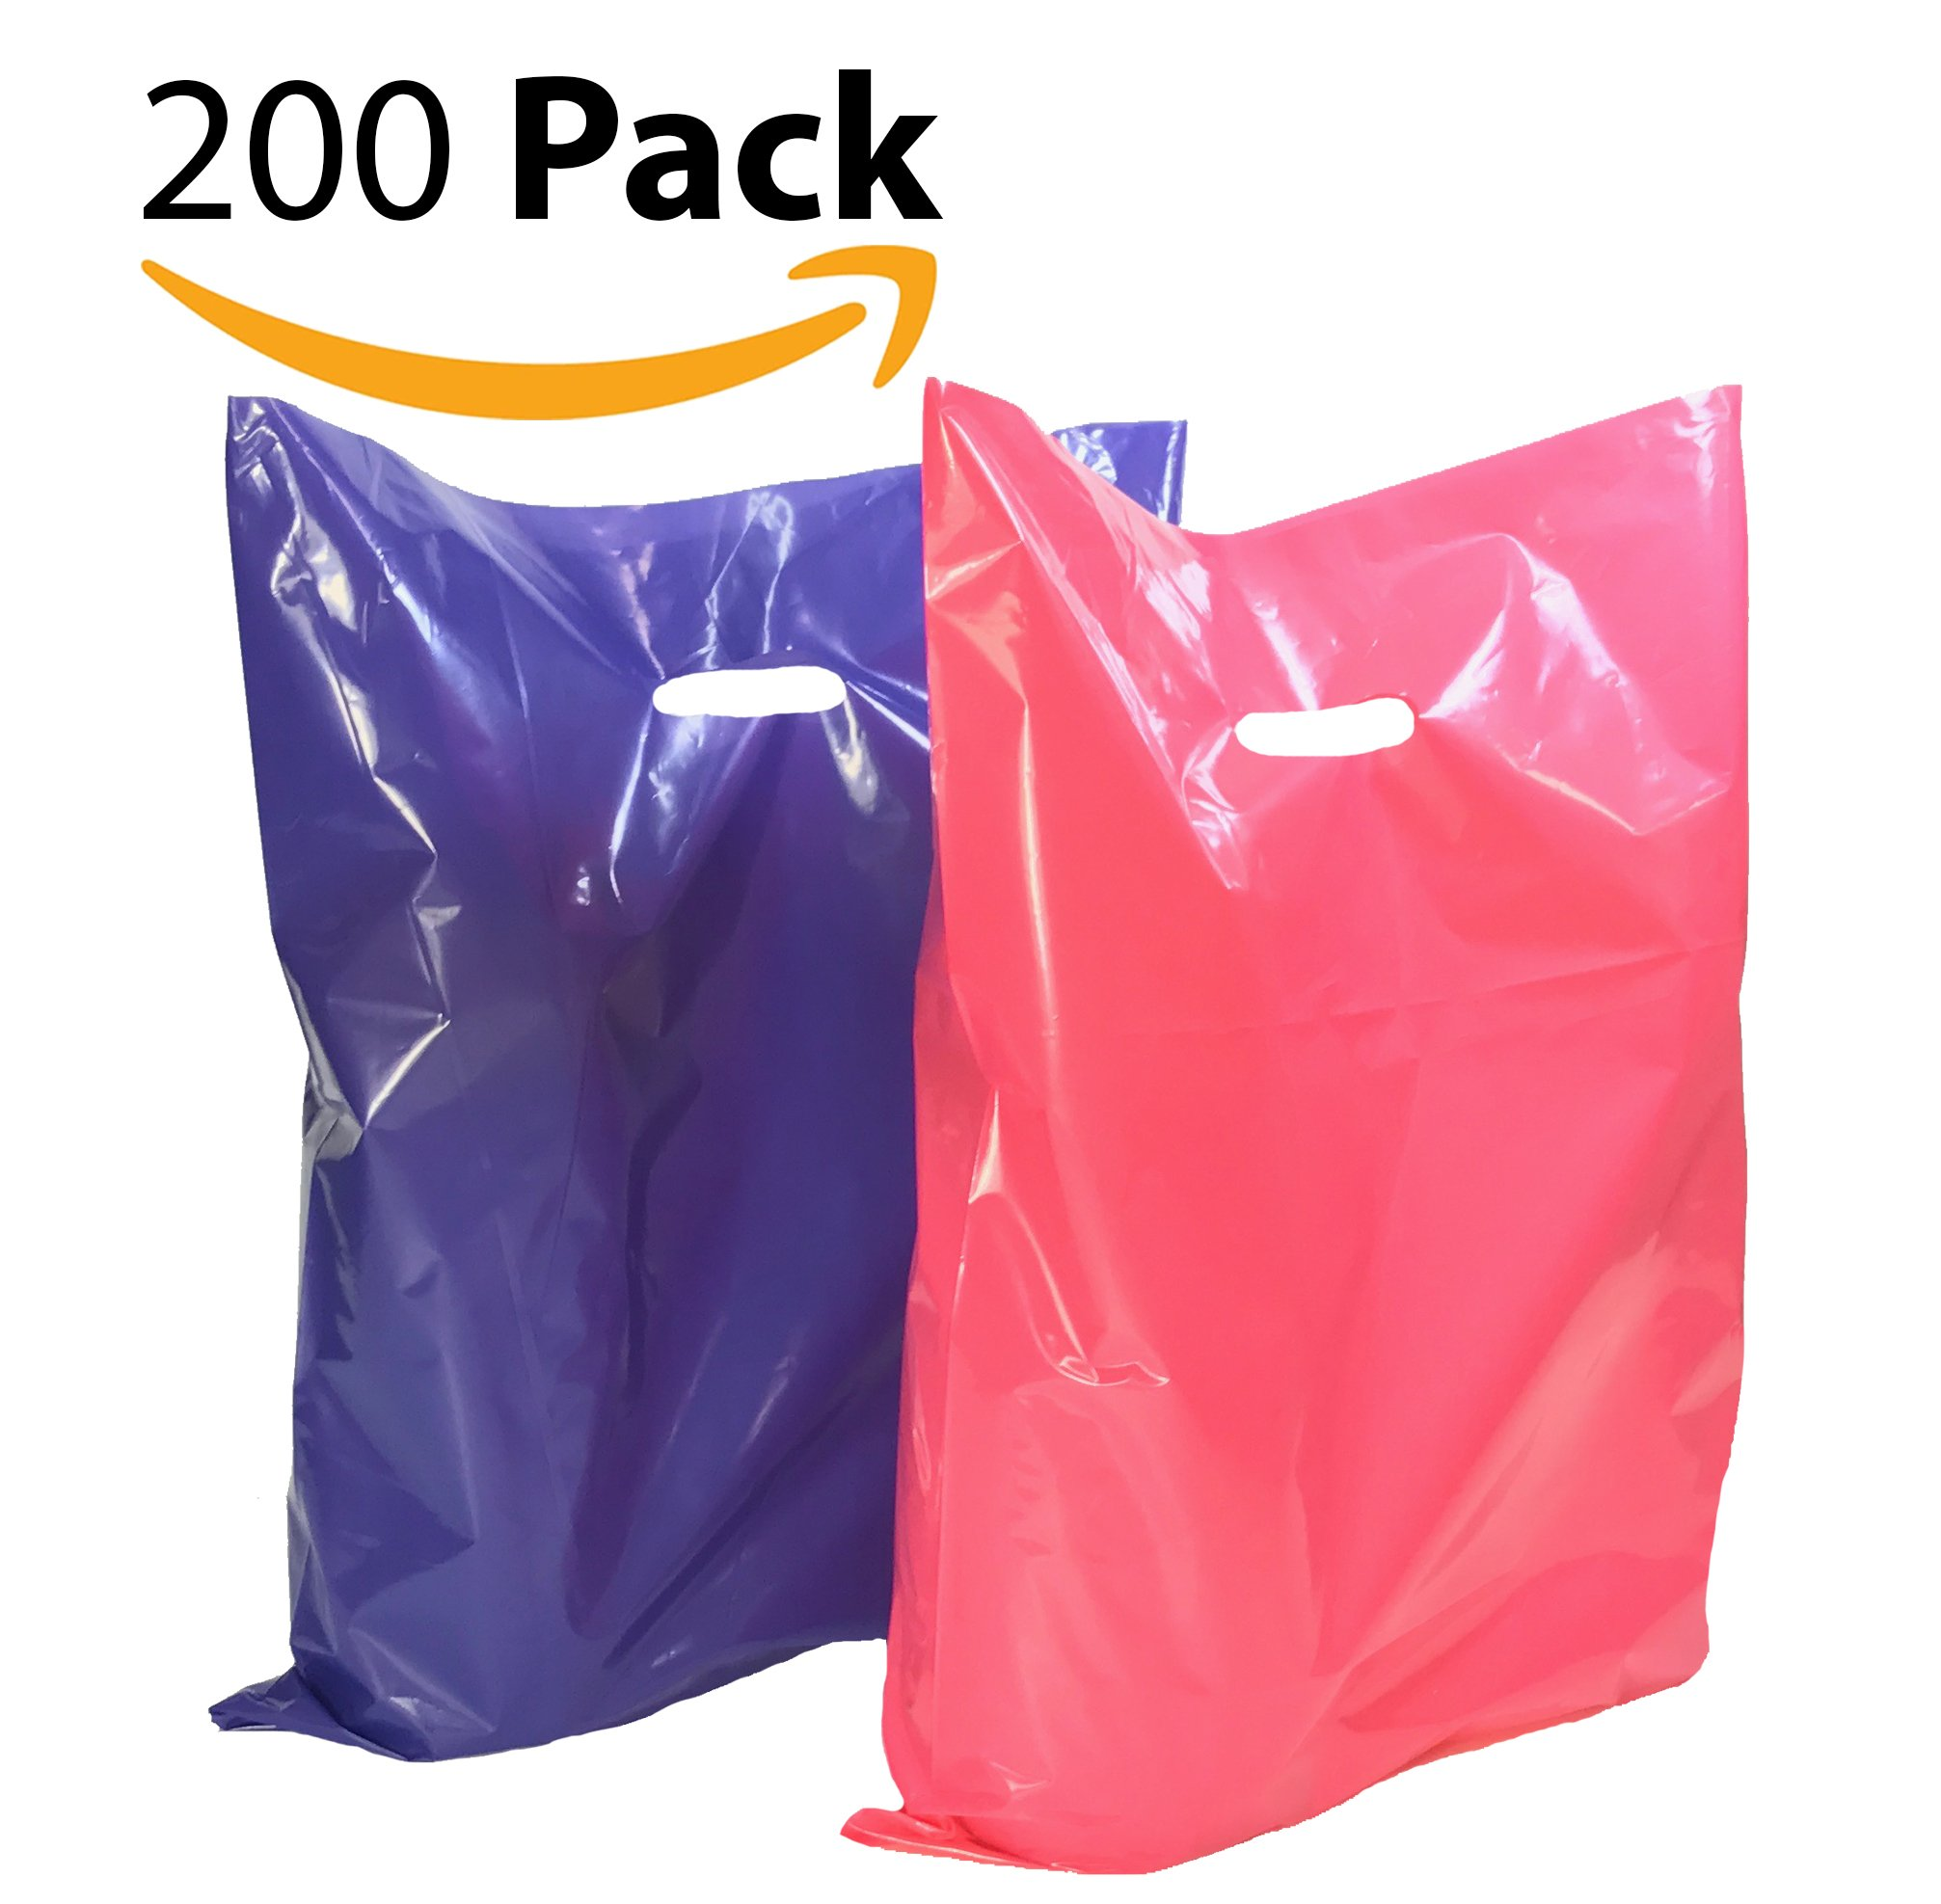 200 12'' x 15'' Large Purple and Pink Merchandise Plastic Glossy Bags, with Handles, Shopping Bag, Party Favors, Simple John Supply